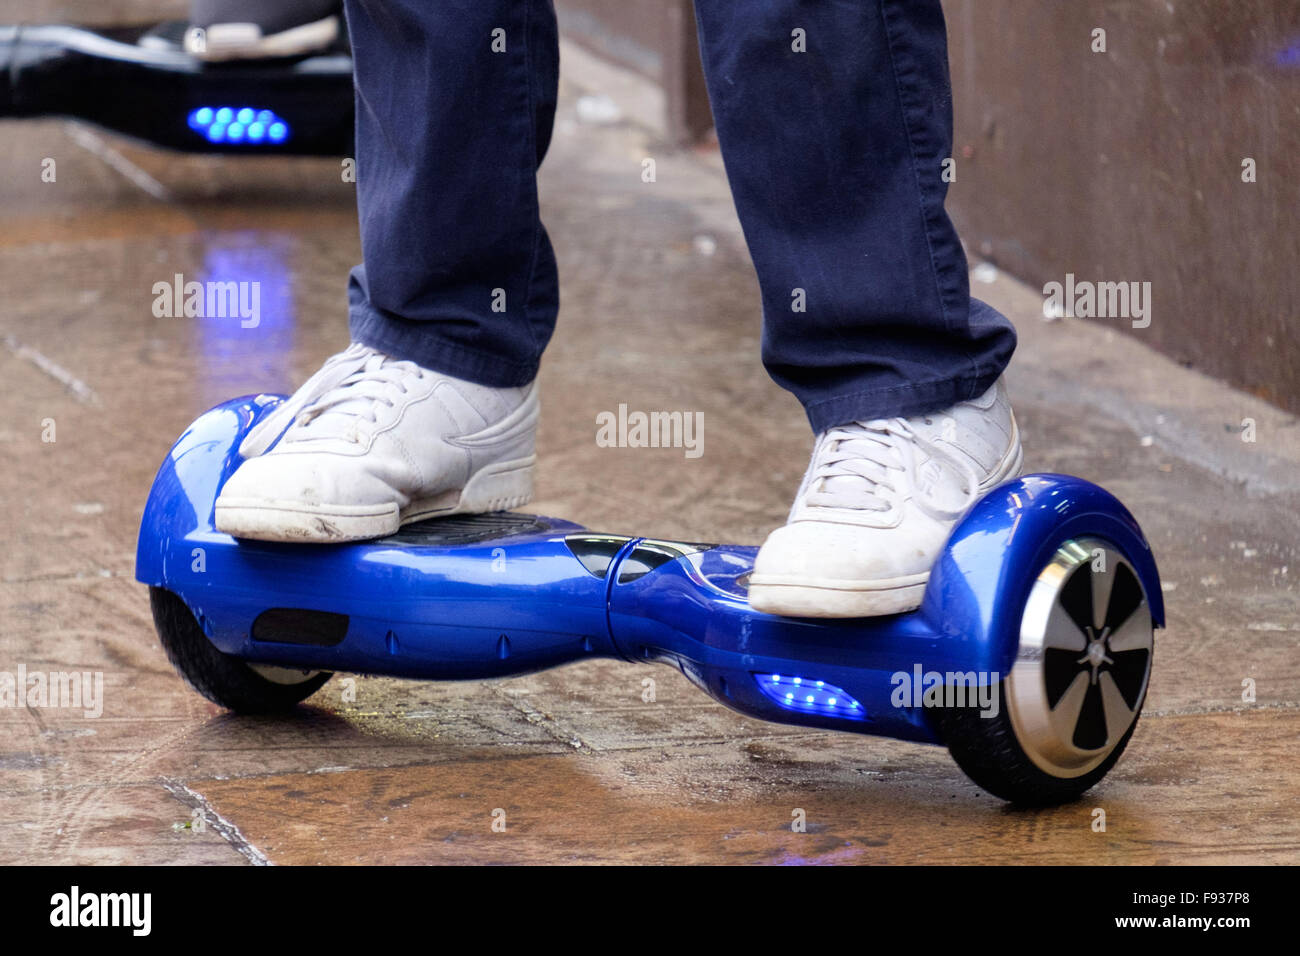 13th Dec, 2015. 'Hoverboard' scooters being ridden by teenagers, London,  England, UK Credit: Raymond Tang/Alamy Live News